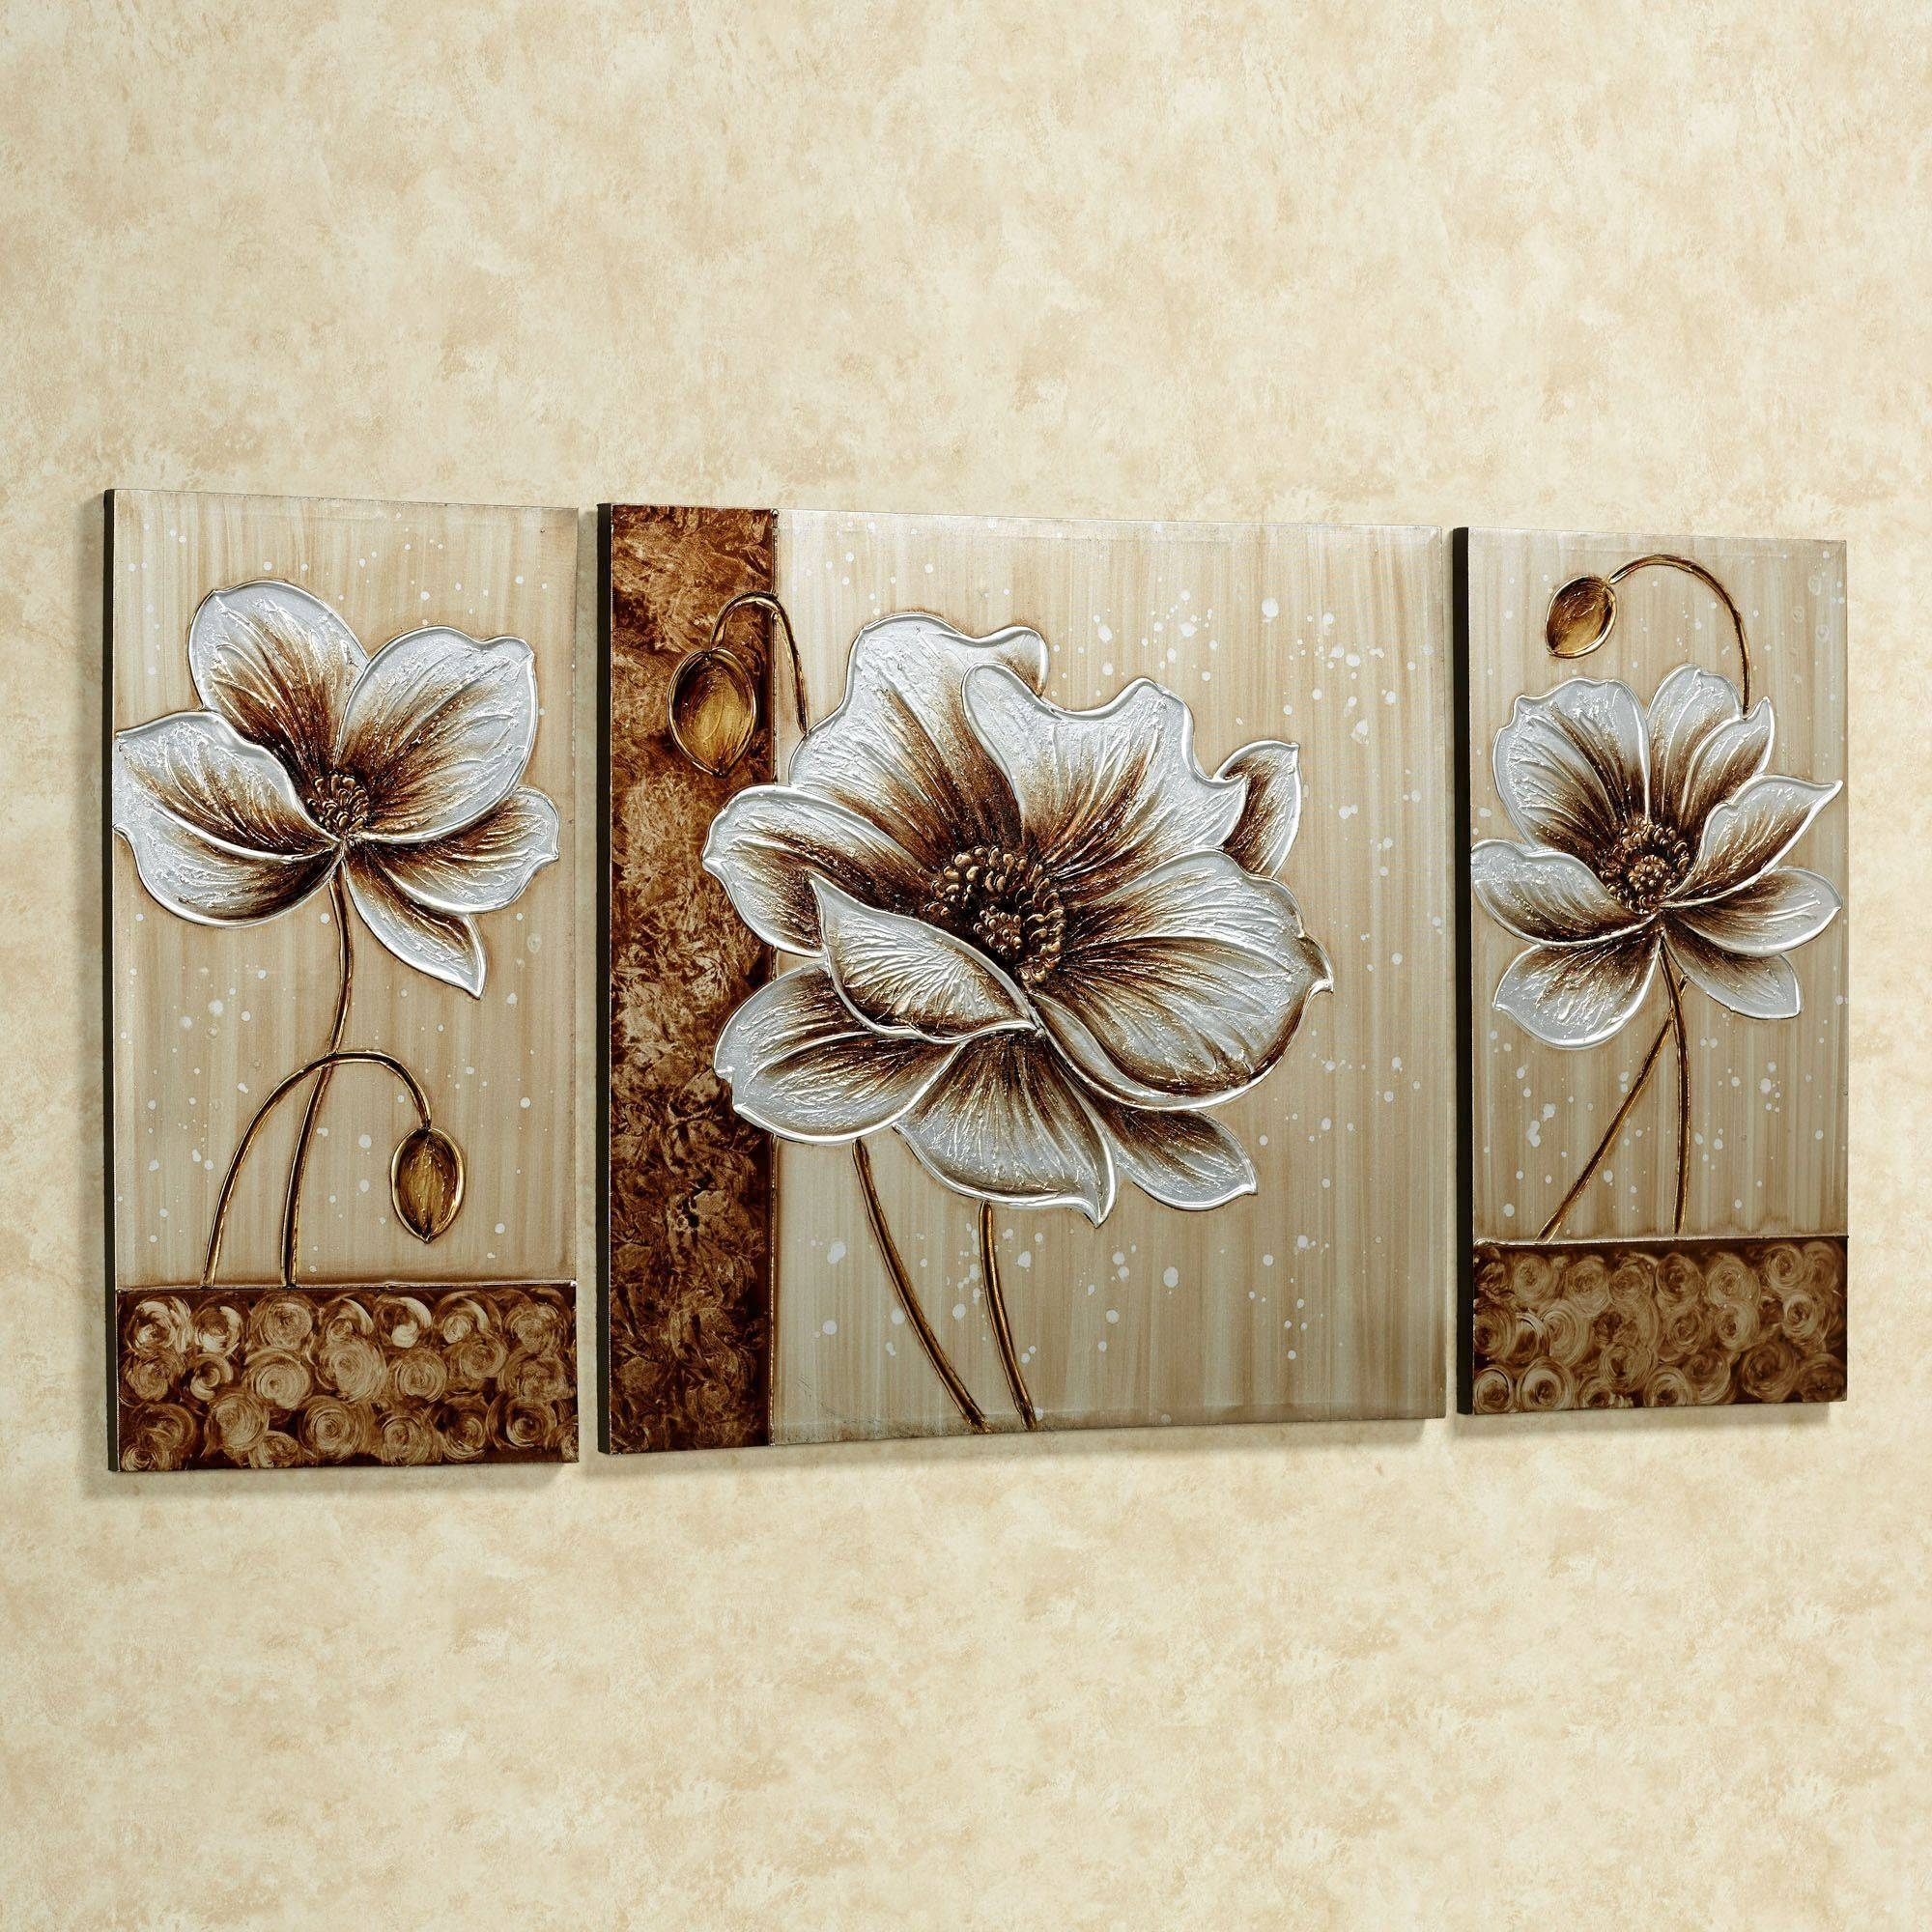 Canvas Flower Wall Art Within Best And Newest Multiple Piece Canvas Wall Art (View 23 of 25)